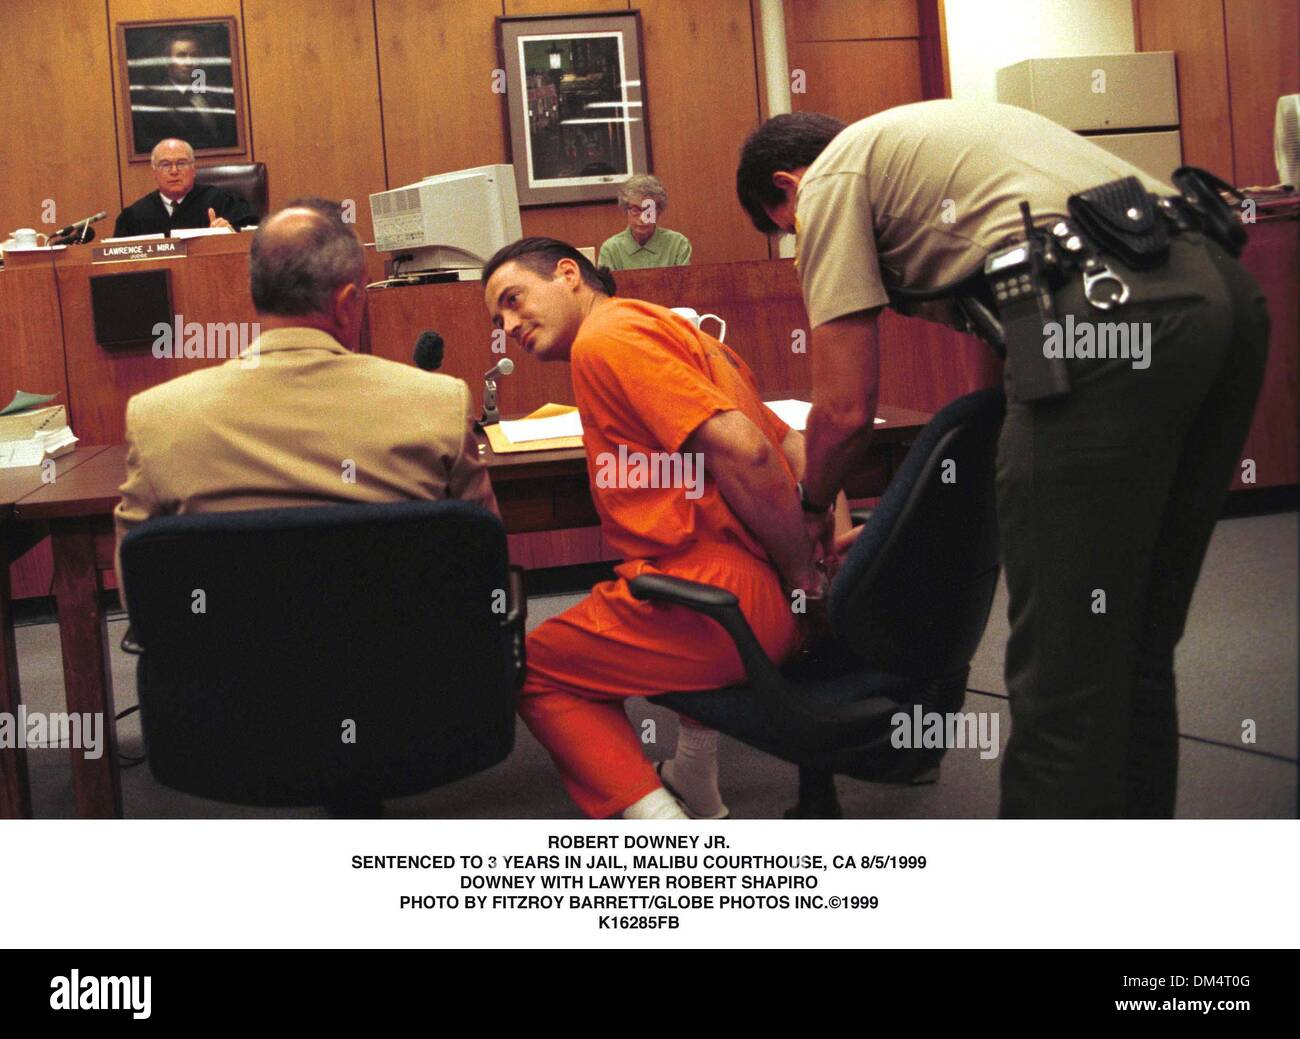 Aug. 5, 1999 - ROBERT DOWNEY JR..SENTENCED TO 3 YEARS IN JAIL. MALIBU COUTHOUSE, CA.  8/5/99. FIZTROY BARRETT/  - Stock Image